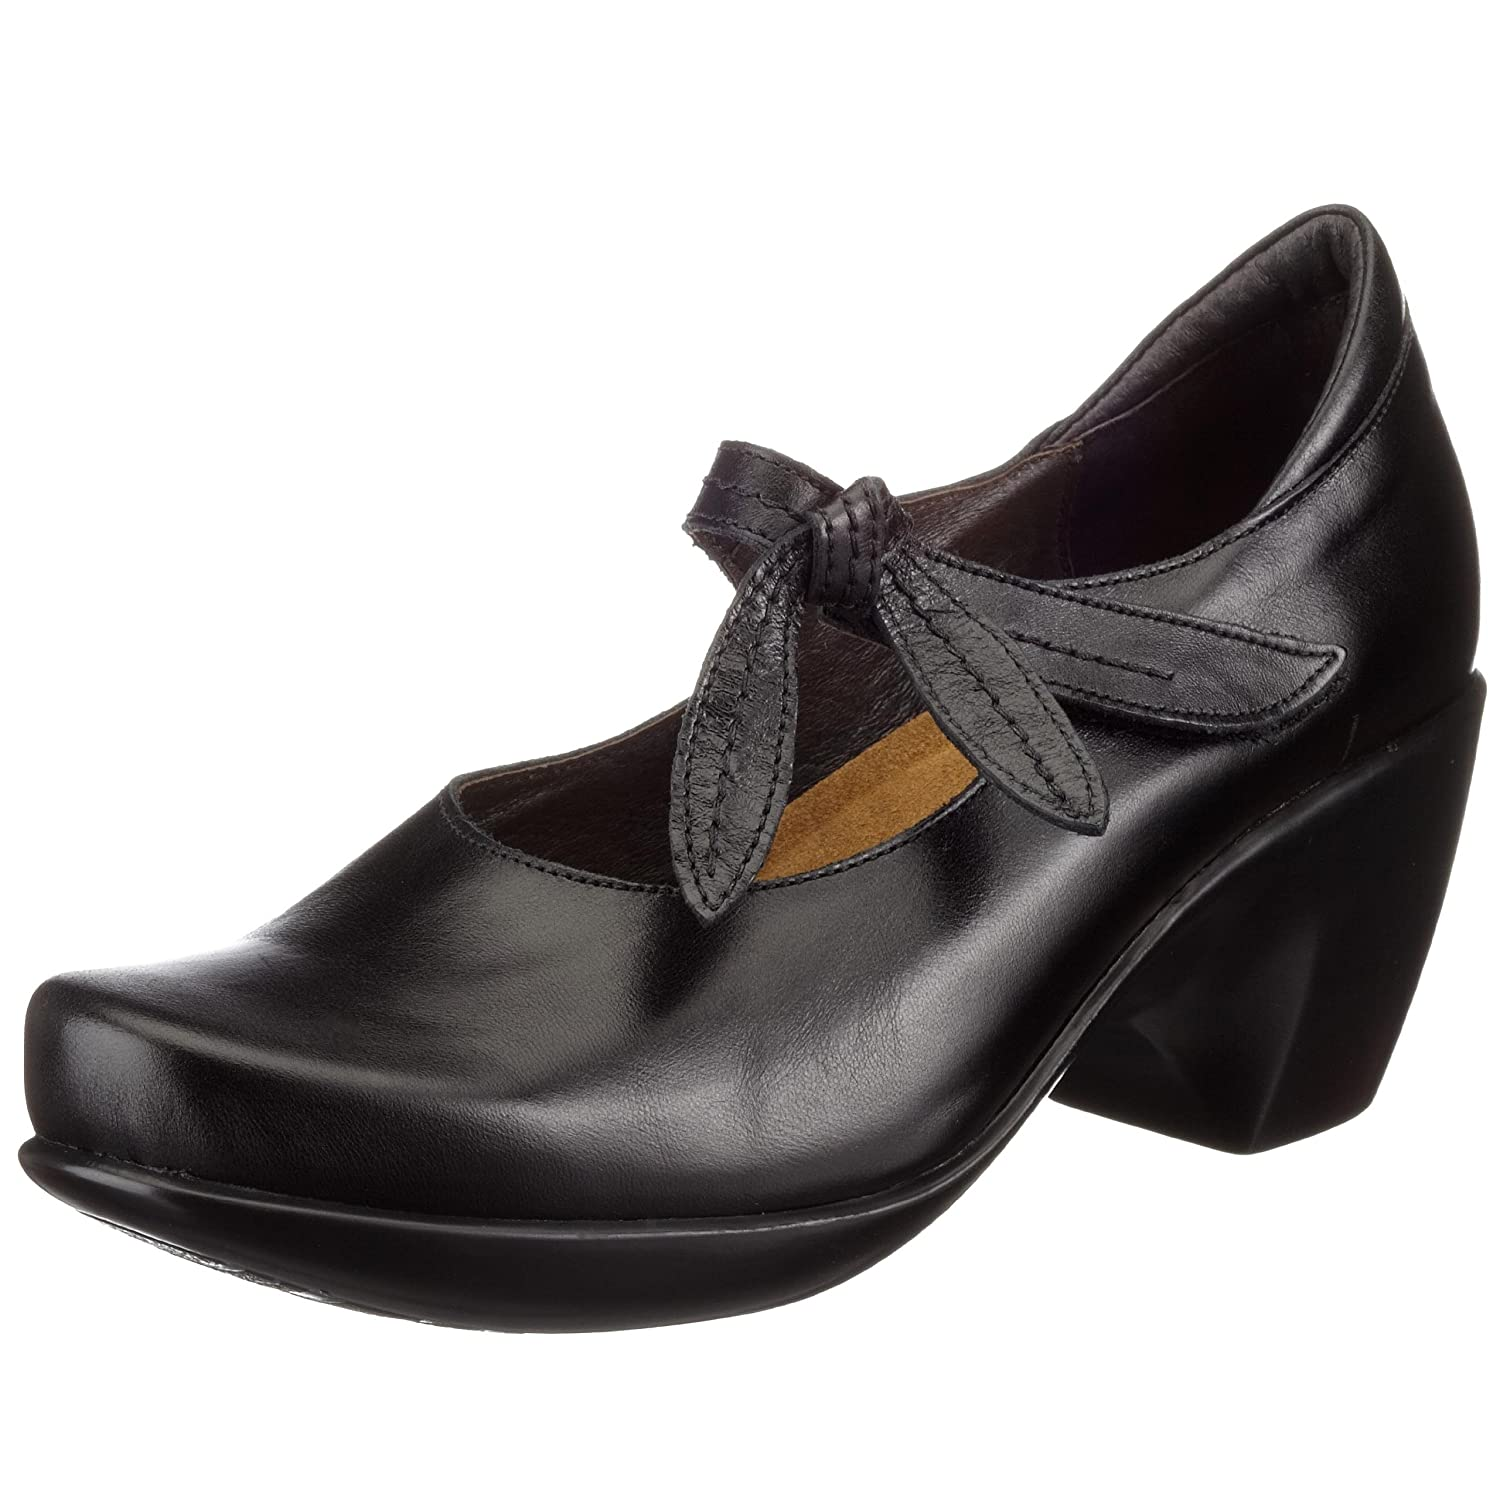 Midnight Black Leather Naot Women's Pleasure Leather Mary Jane shoes